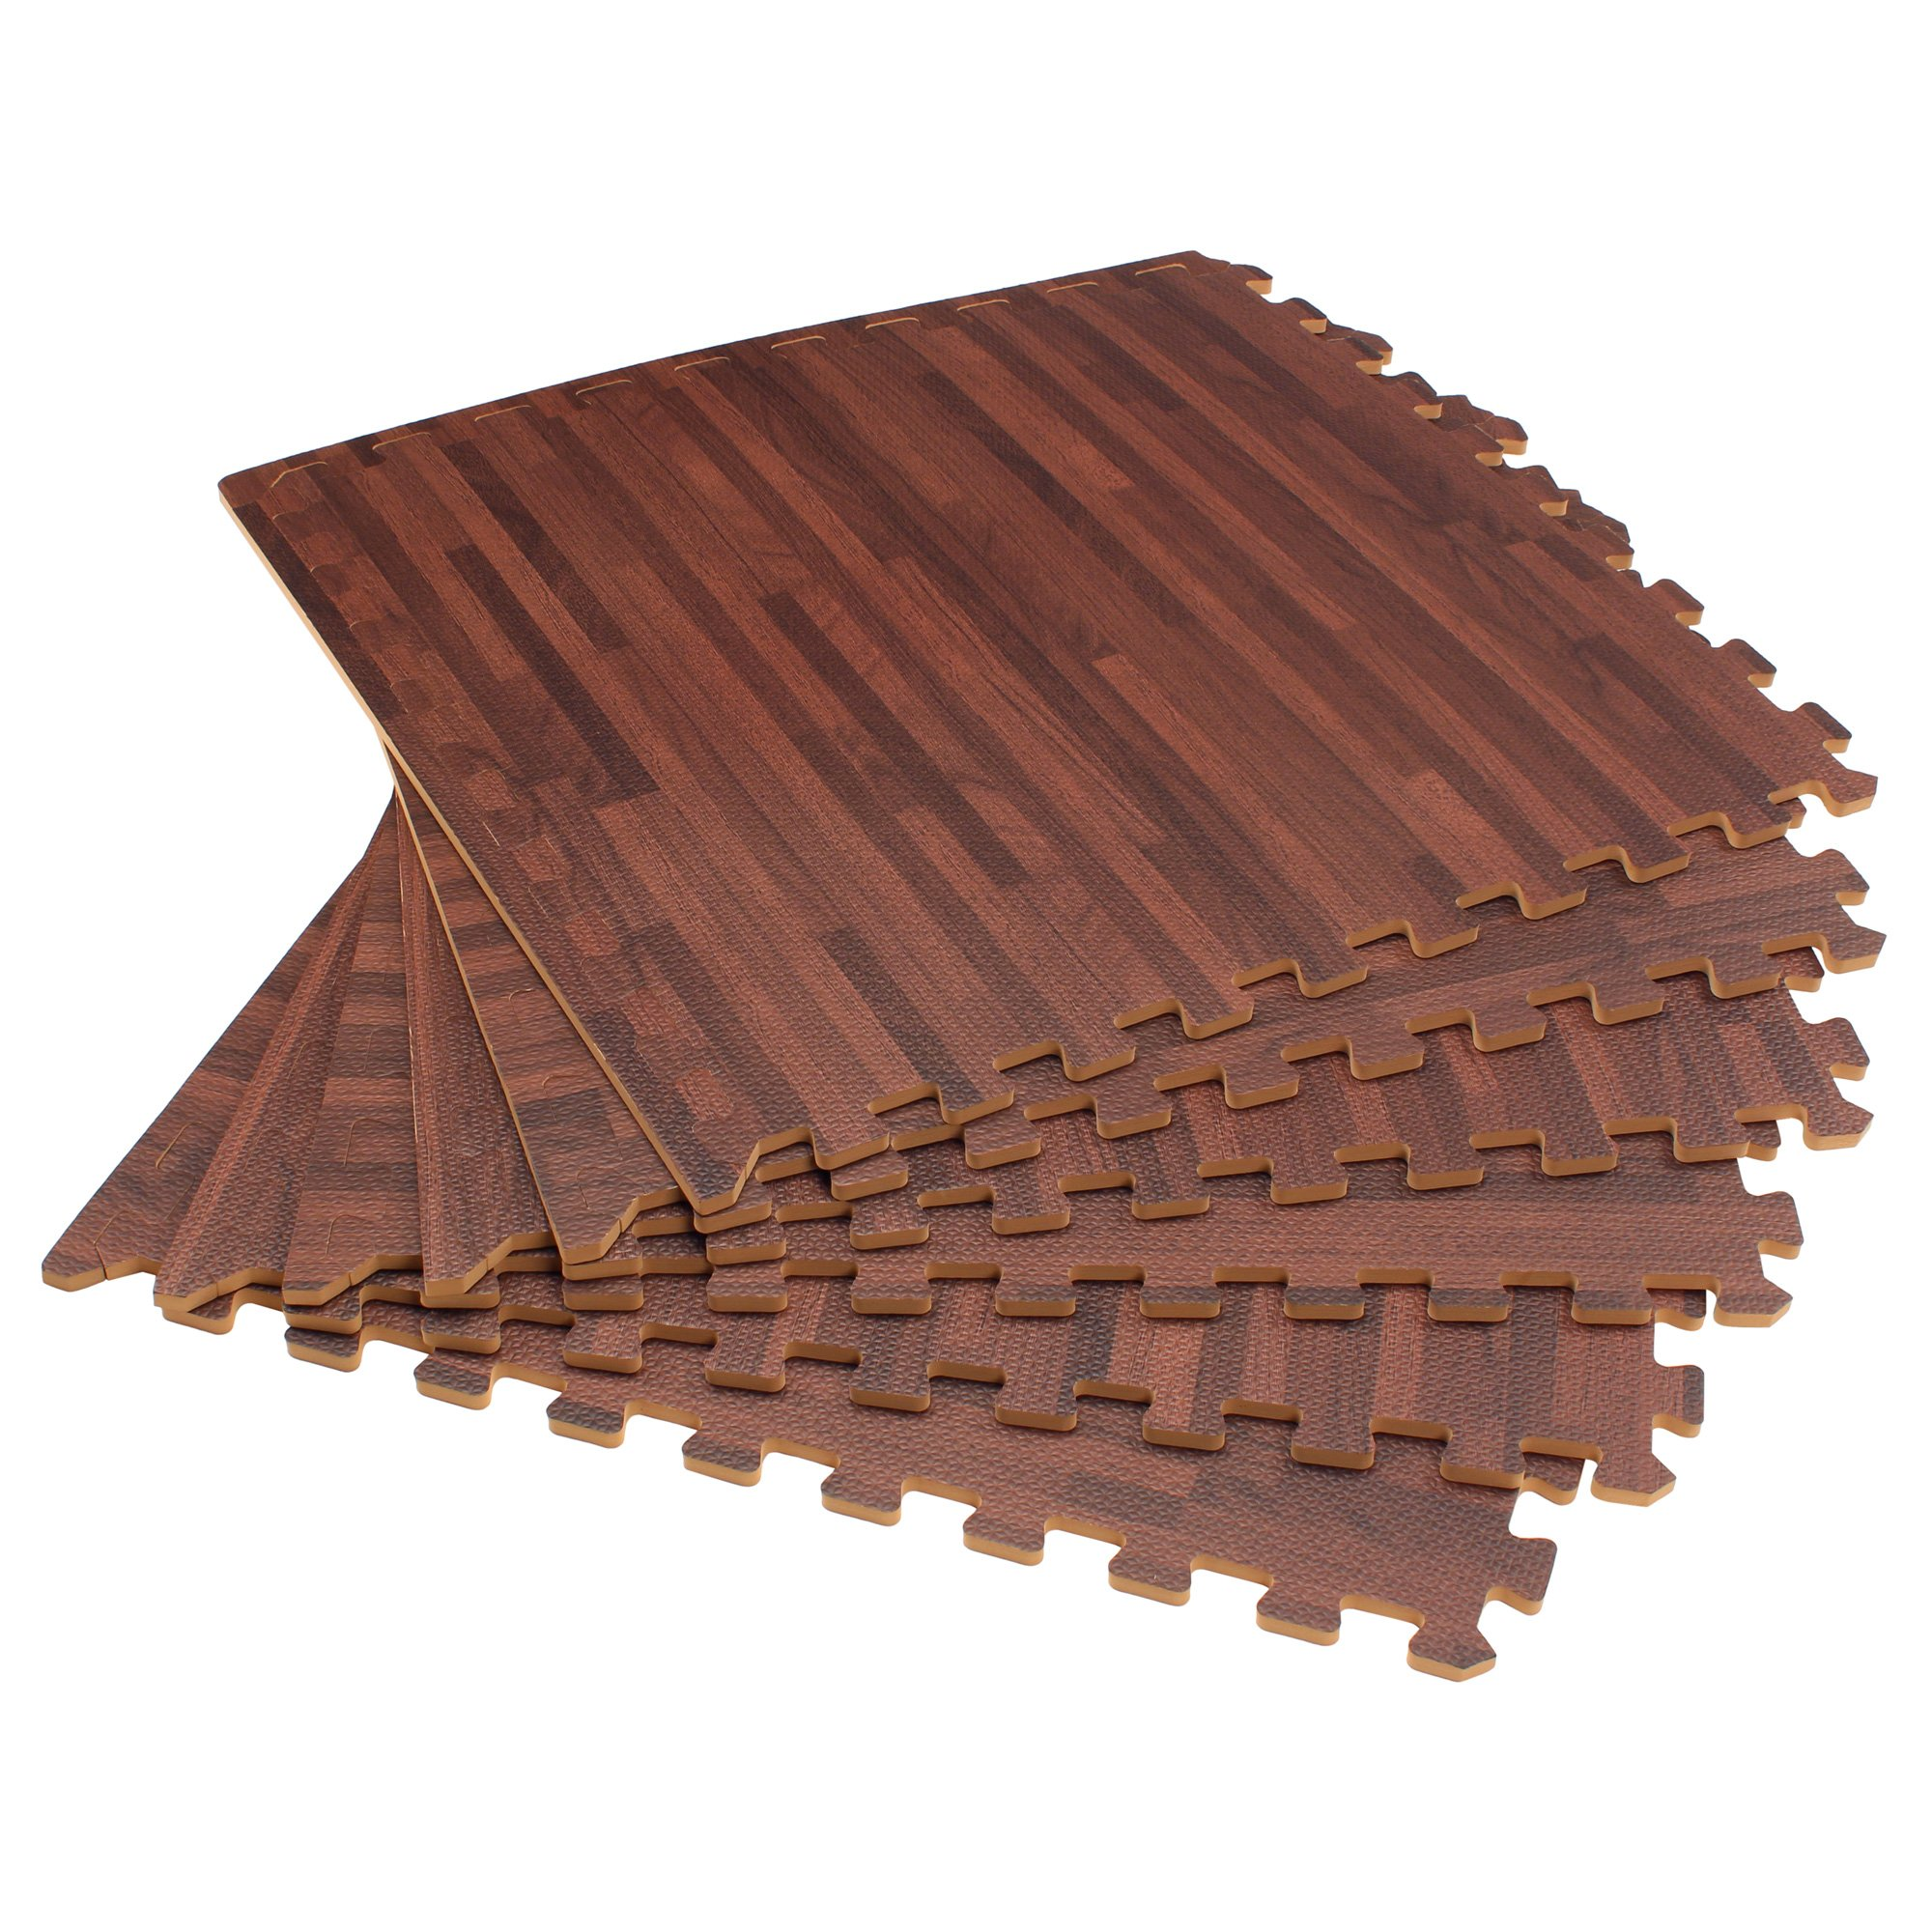 Forest Floor 3/8'' Thick Printed Wood Grain Interlocking Foam Floor Mats, 16 Sq Ft (4 Tiles), Cherry by Forest Floor (Image #1)